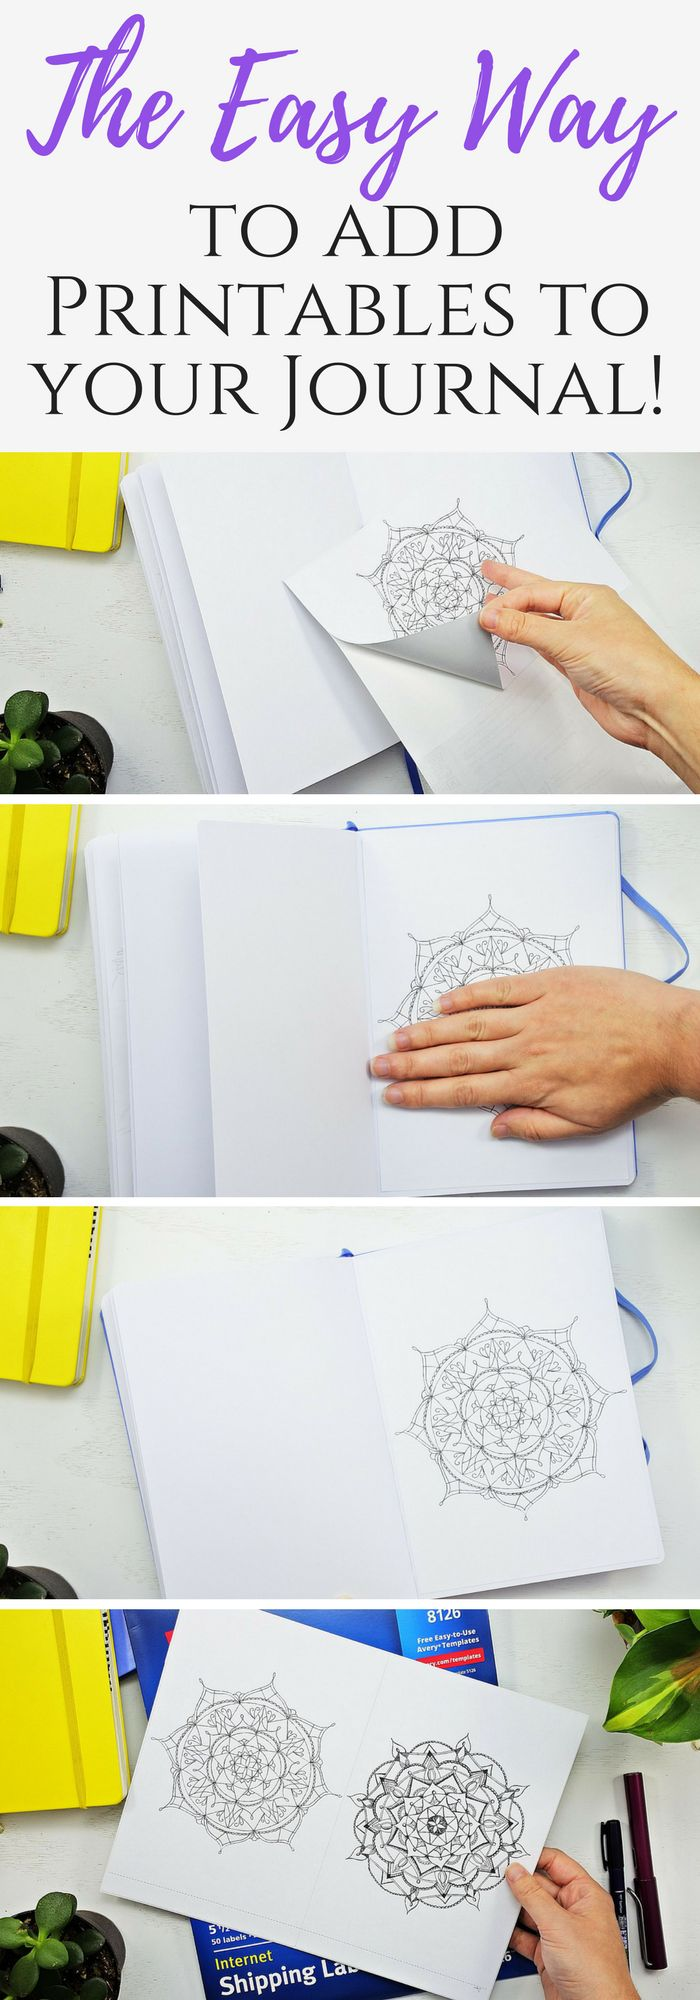 Step by step guide to placing your printables in your Bullet journal - no glue stick required!